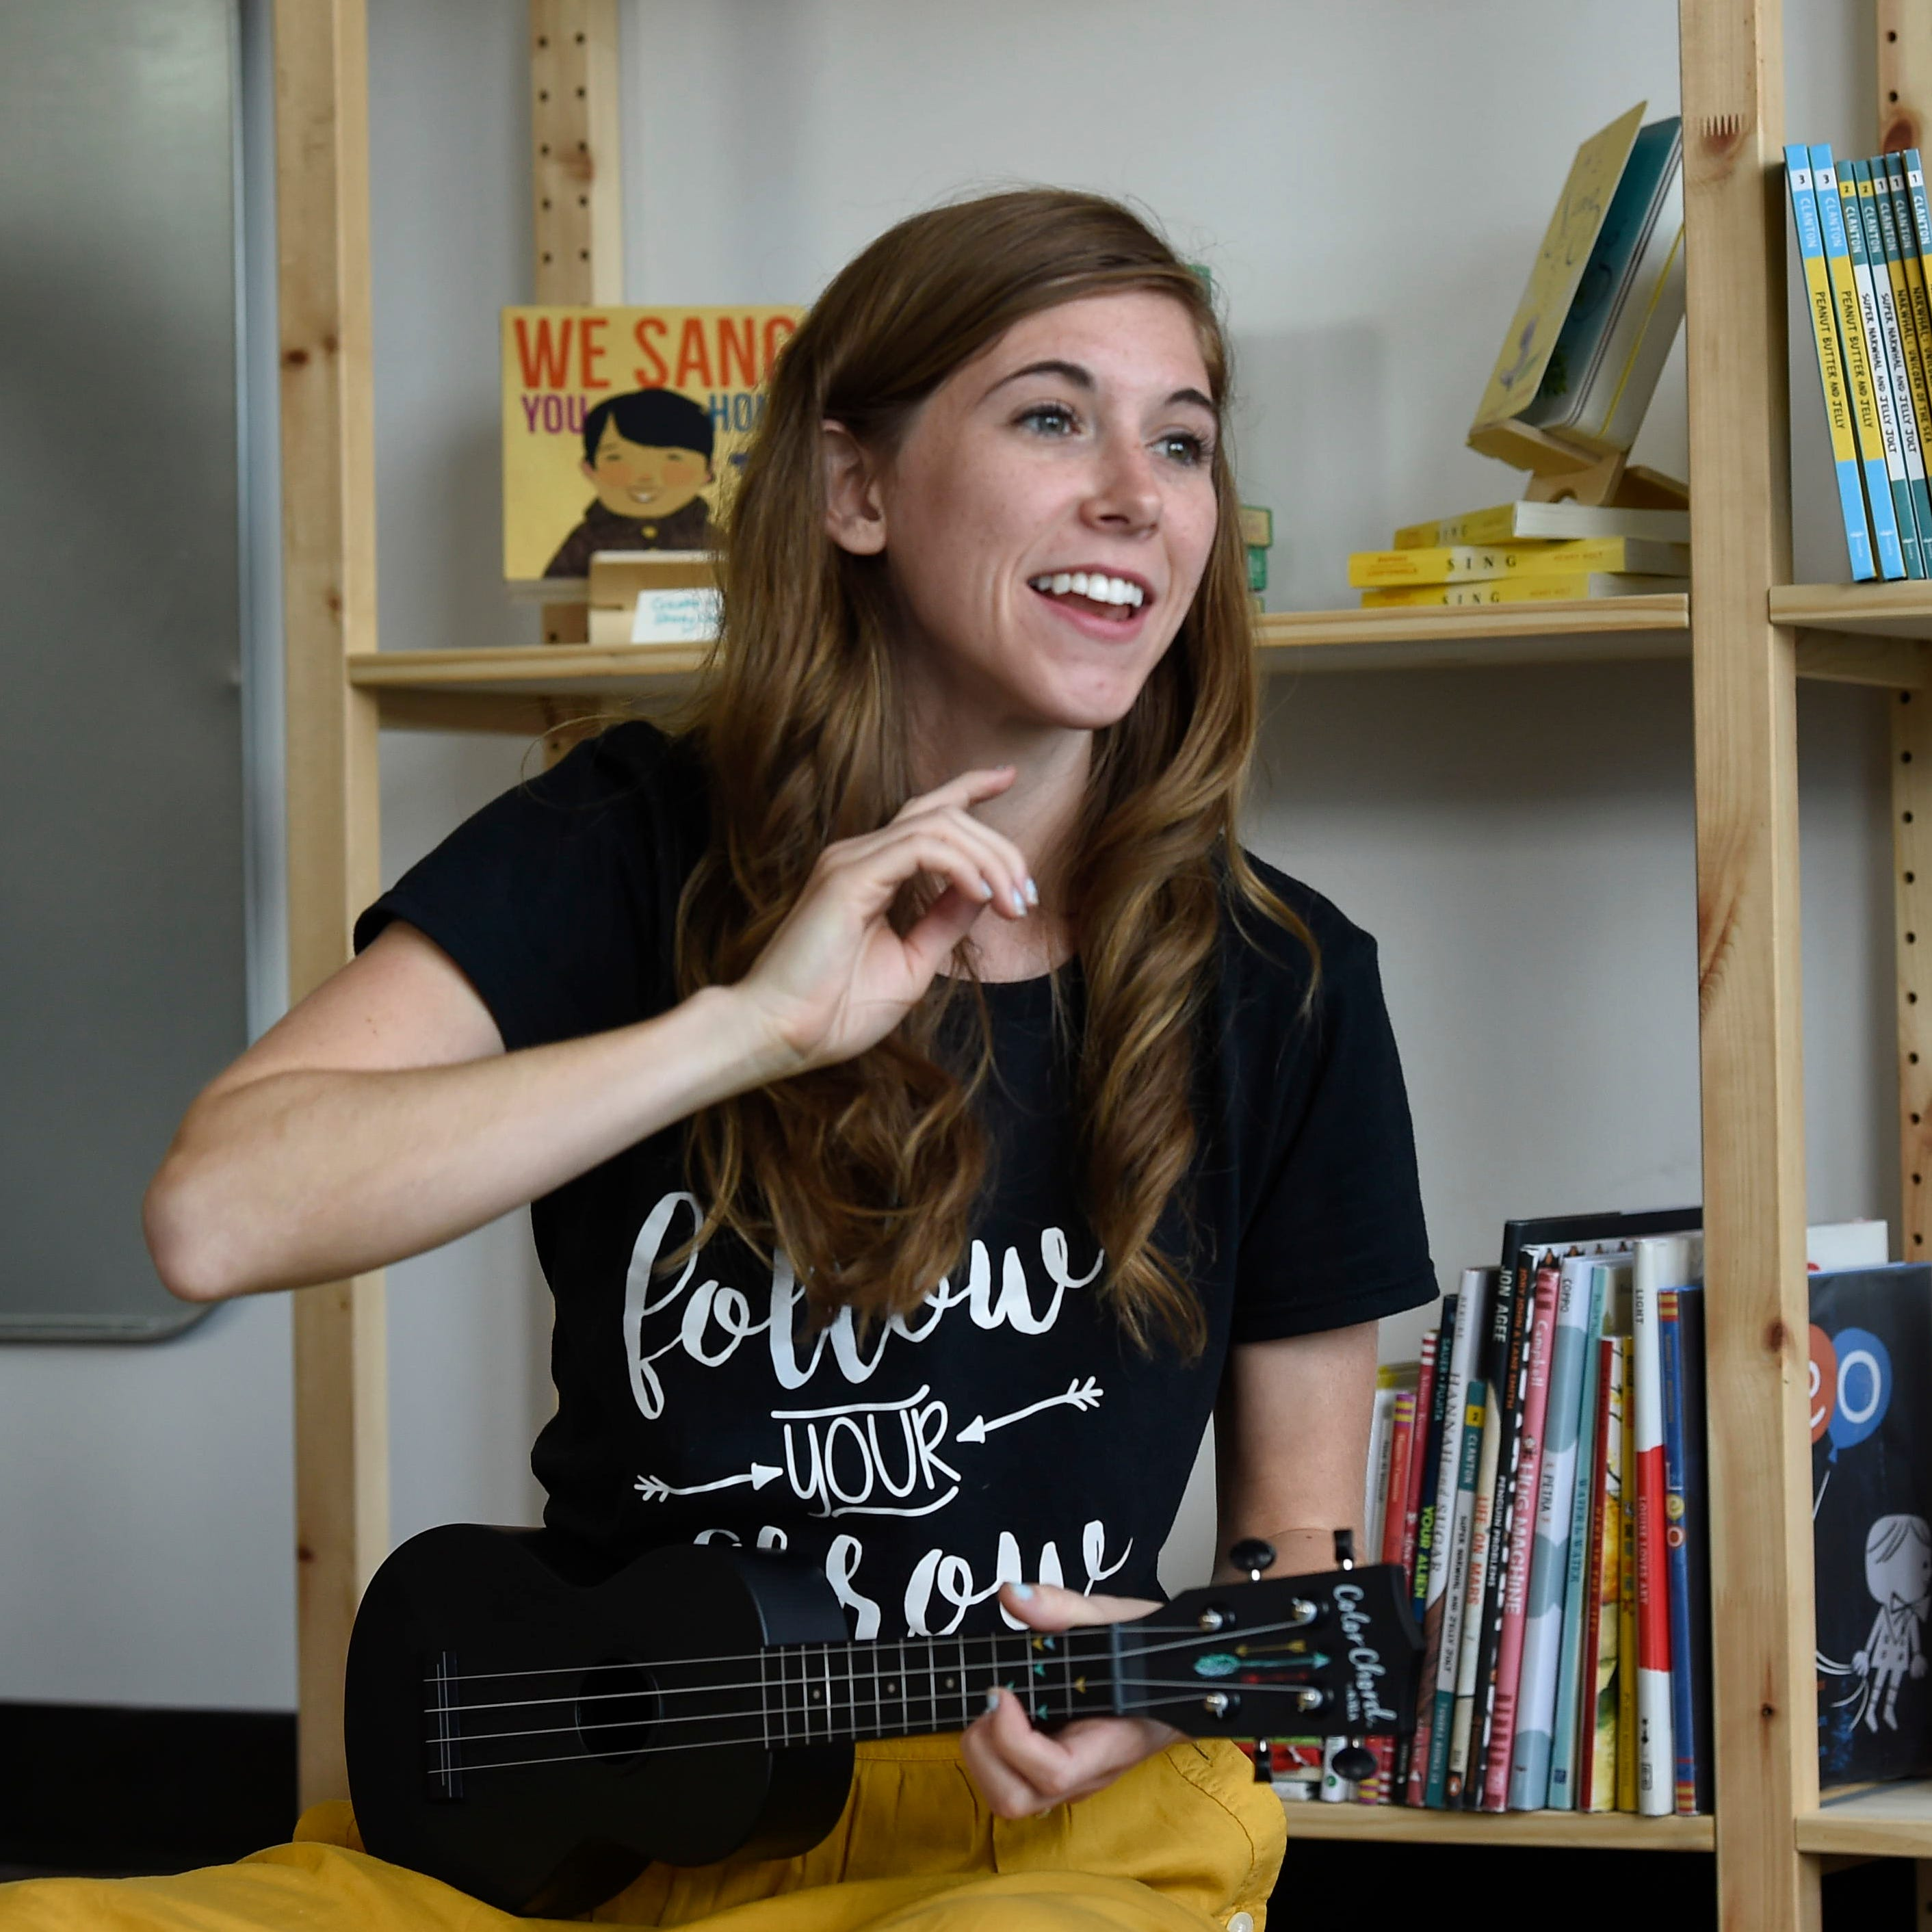 Emily Arrow, YouTube picture book songwriting sensation, shows teachers how to ukulele